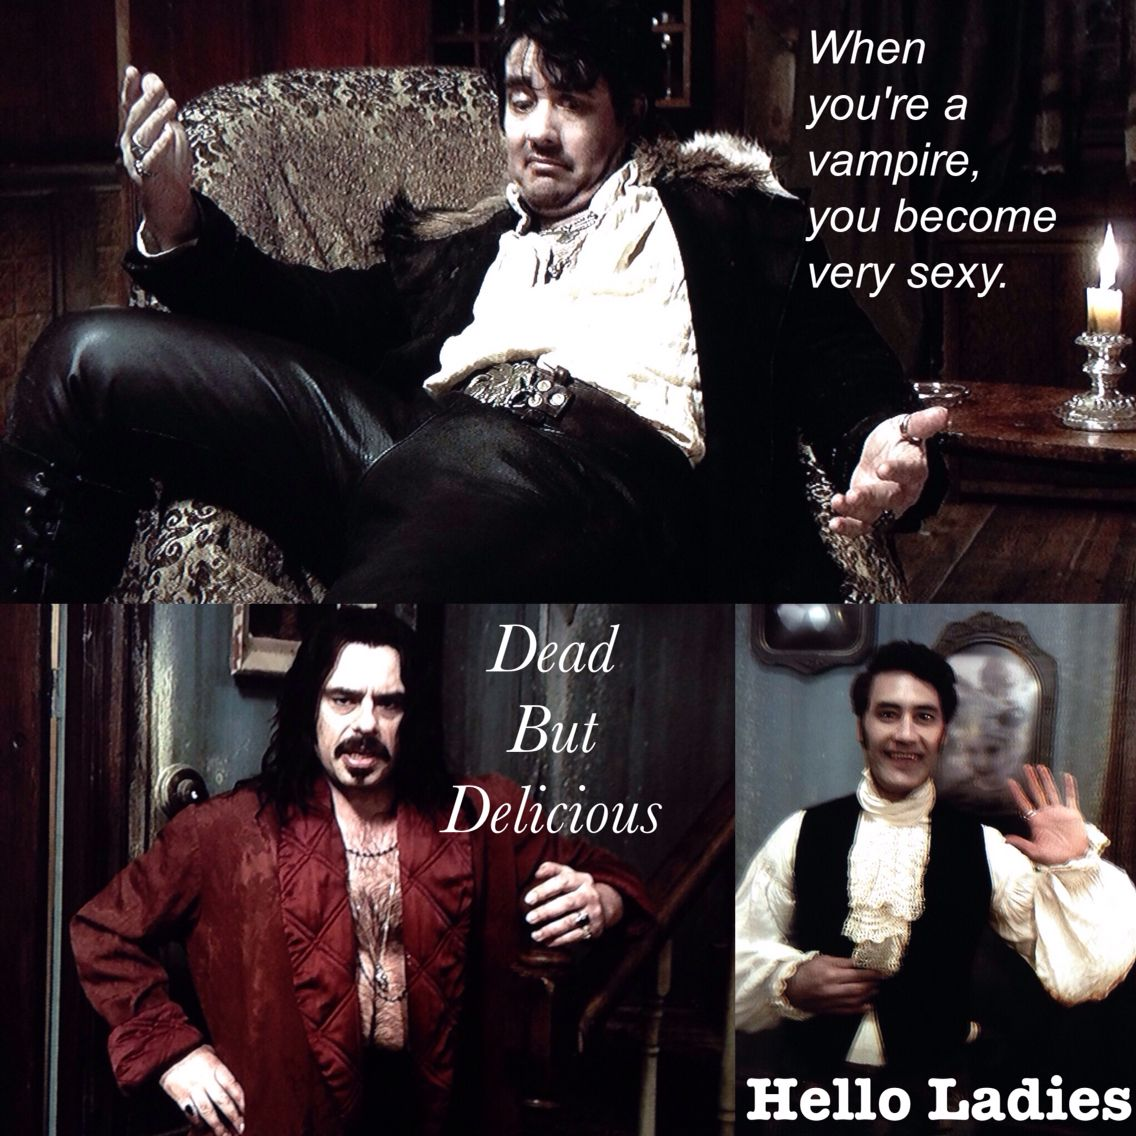 What We Do In The Shadows Whatwedointheshadows Jemaineclement